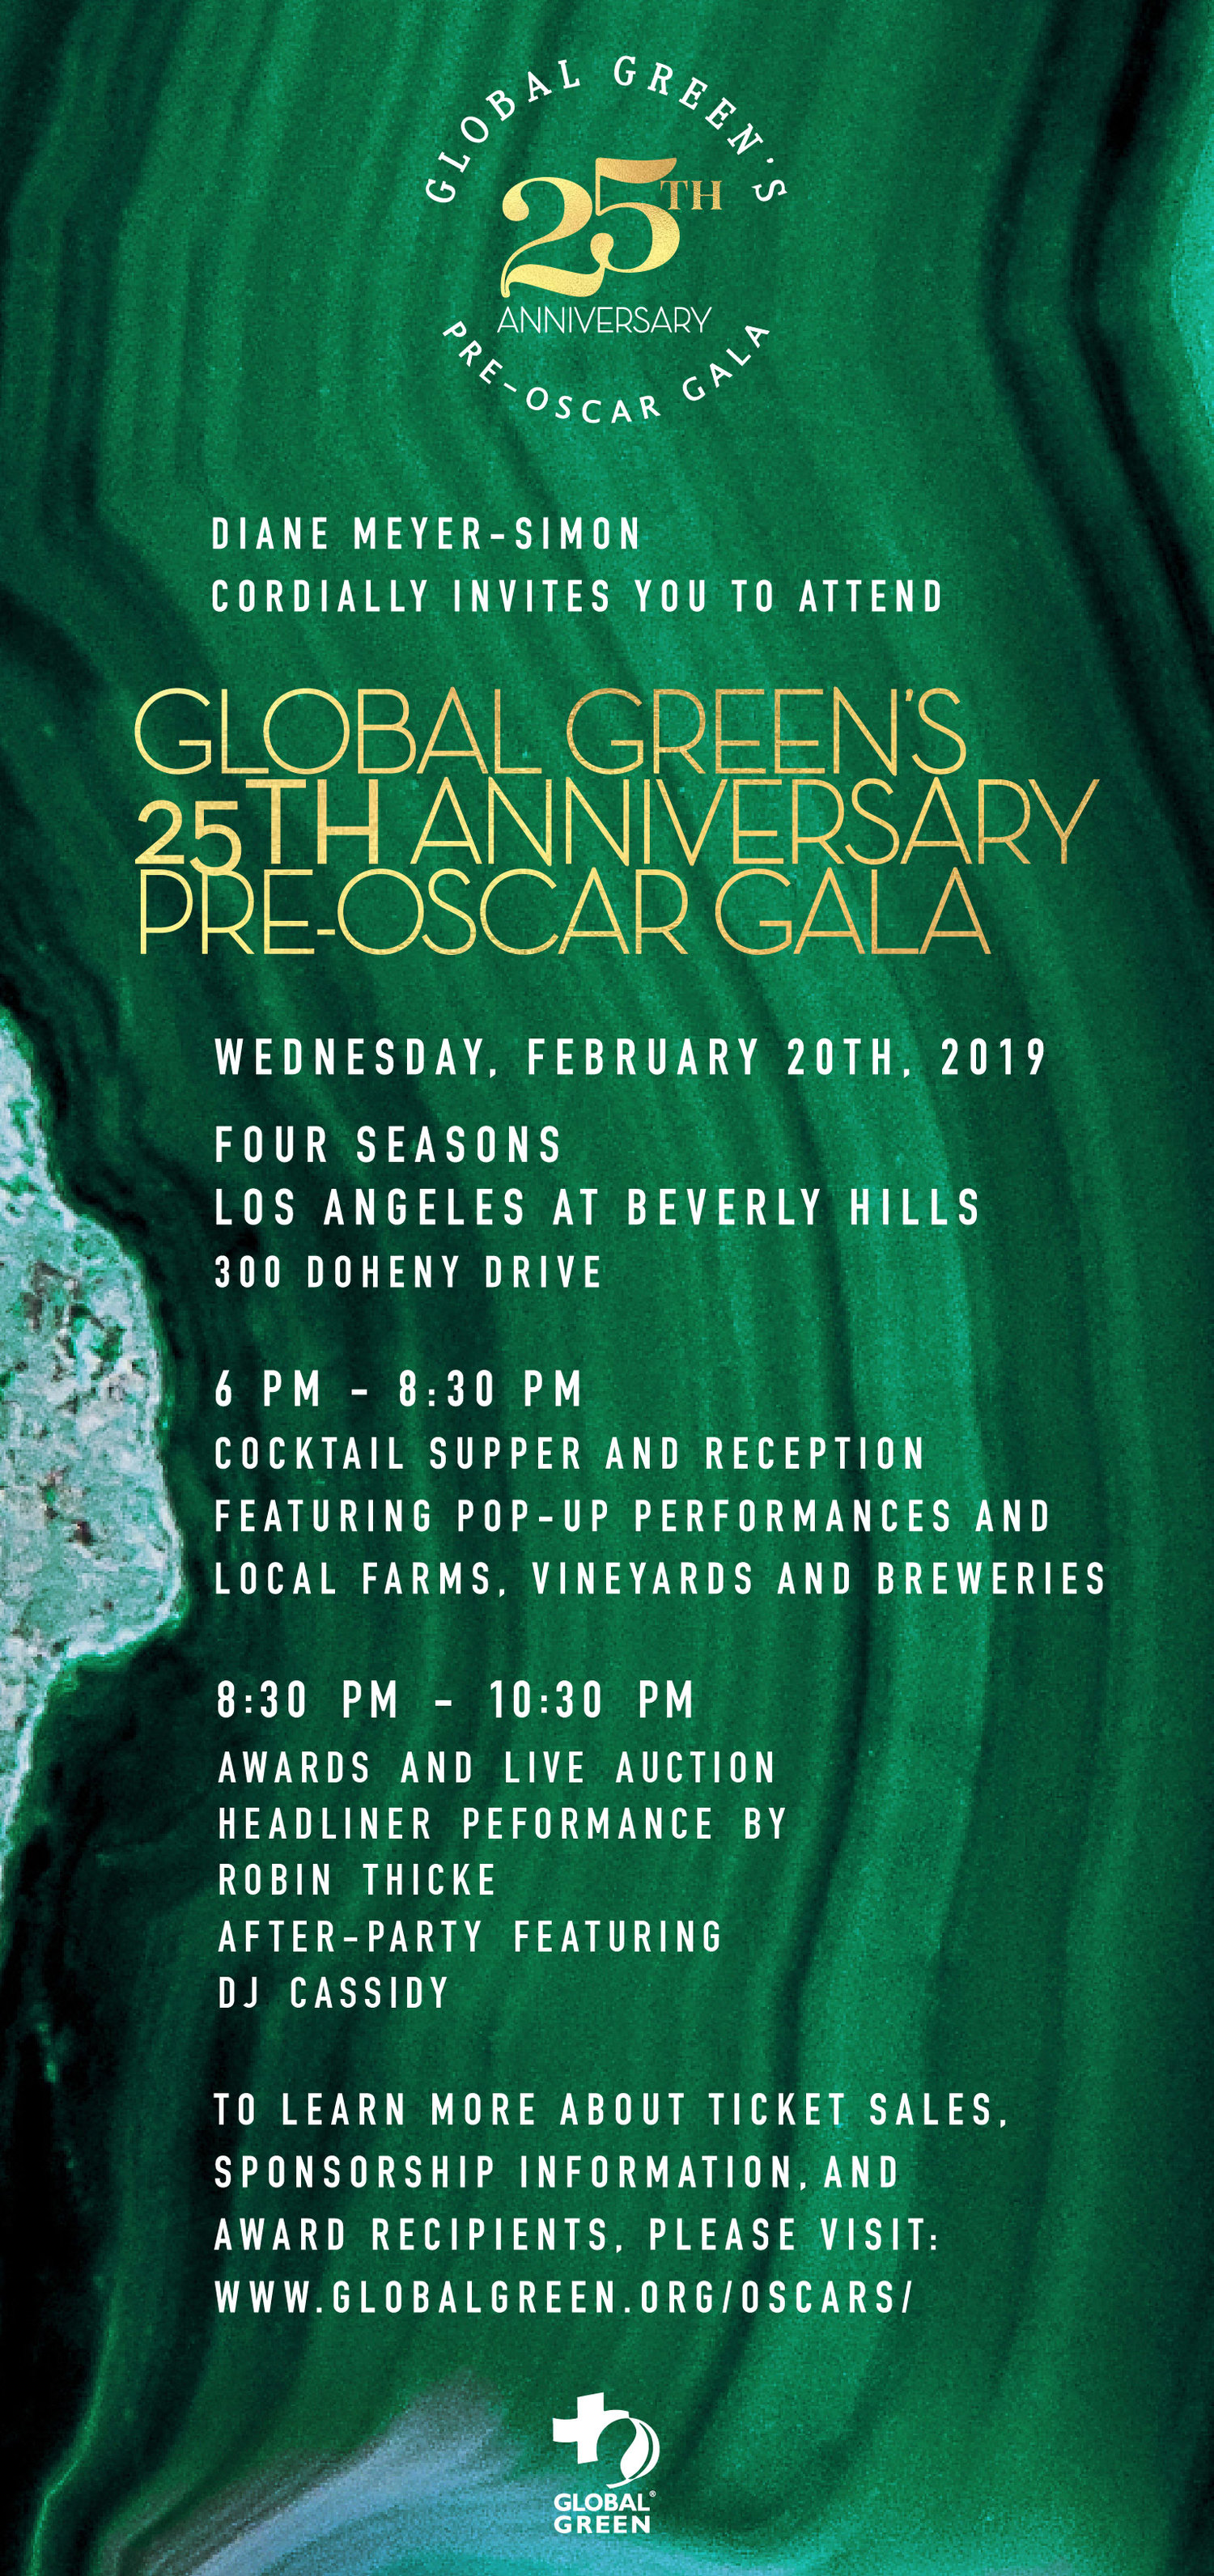 Global+Green+Pre+Oscar+Gala+2019+Invite-01.jpg